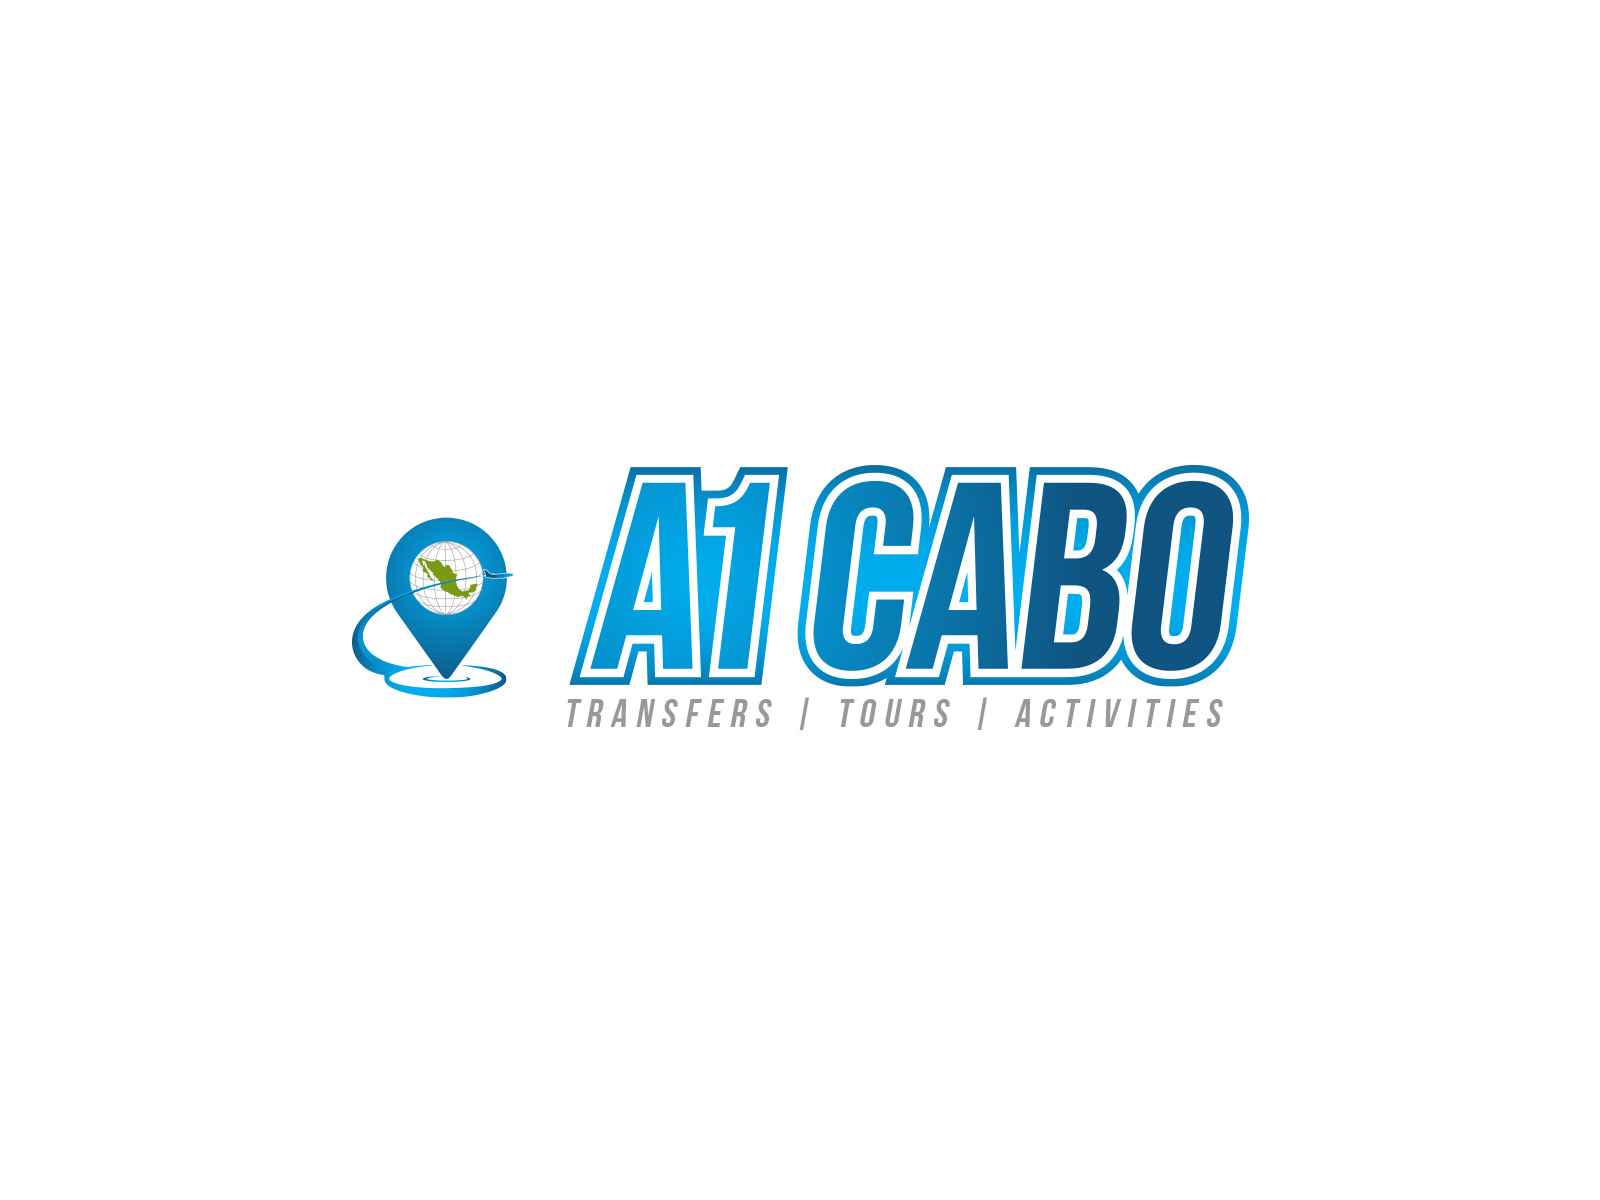 Logo Design by olii - Entry No. 94 in the Logo Design Contest Inspiring Logo Design for A1Cabo.com.